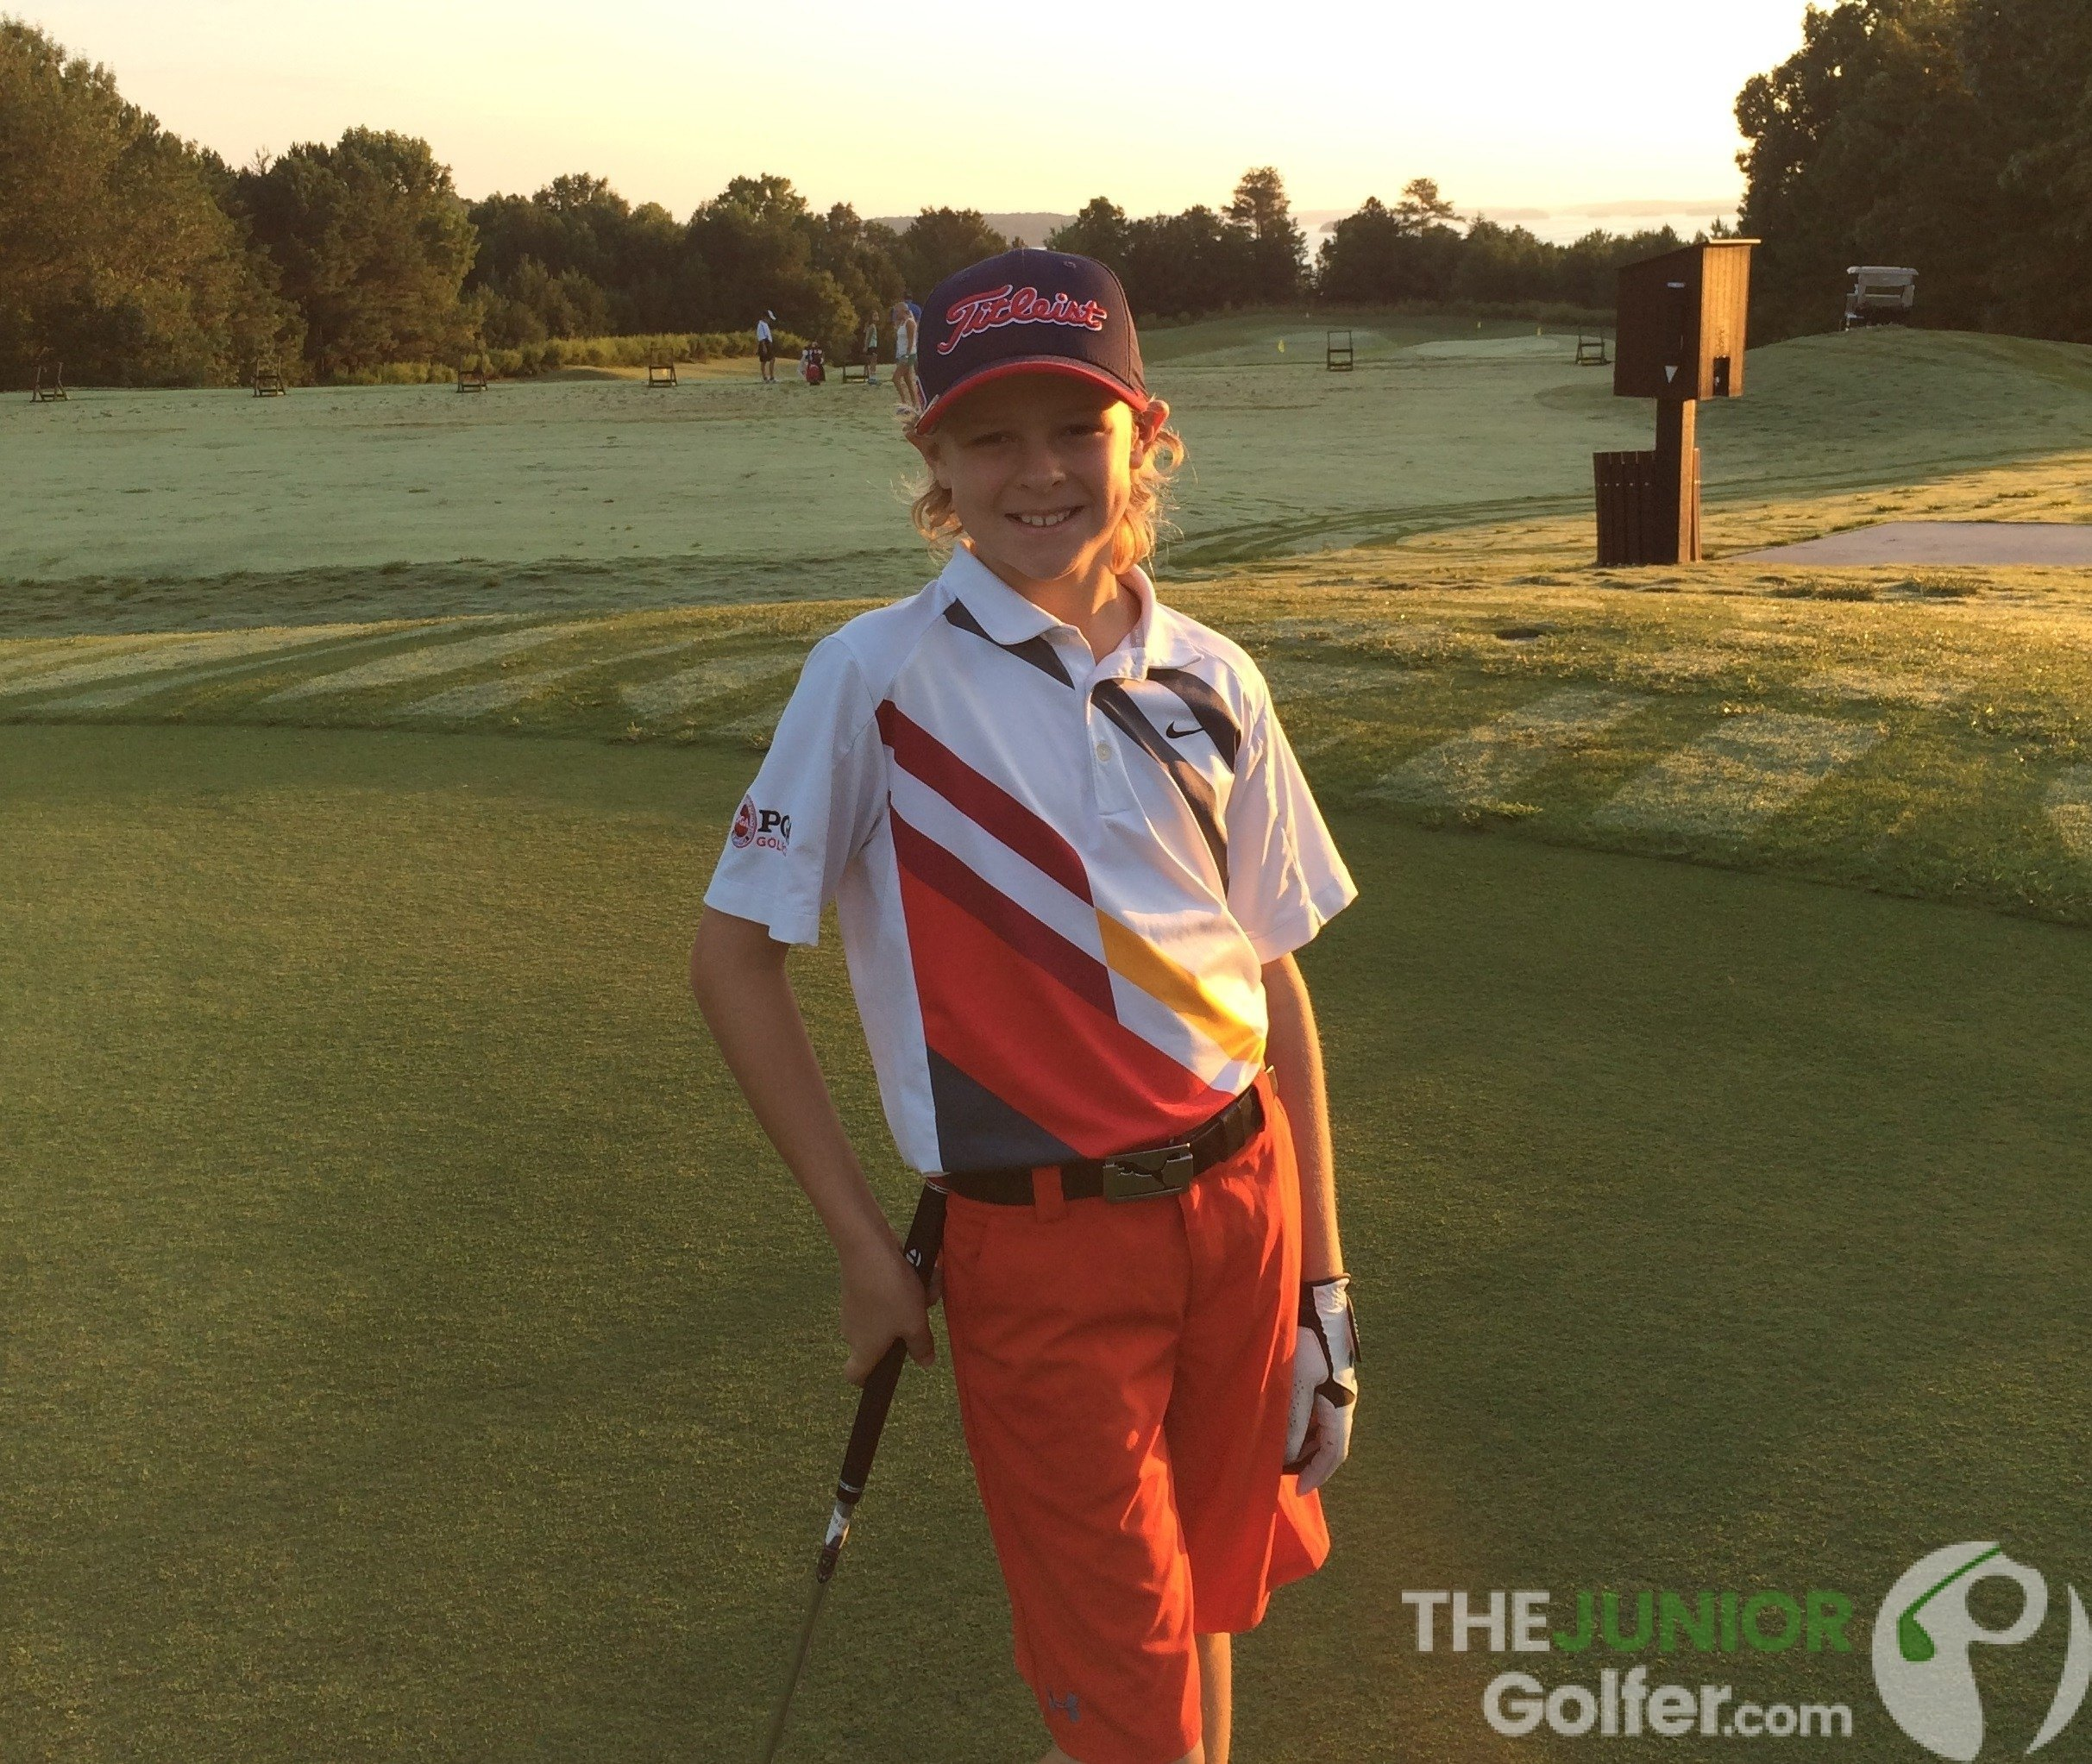 Junior Golfer Clothing Shorts